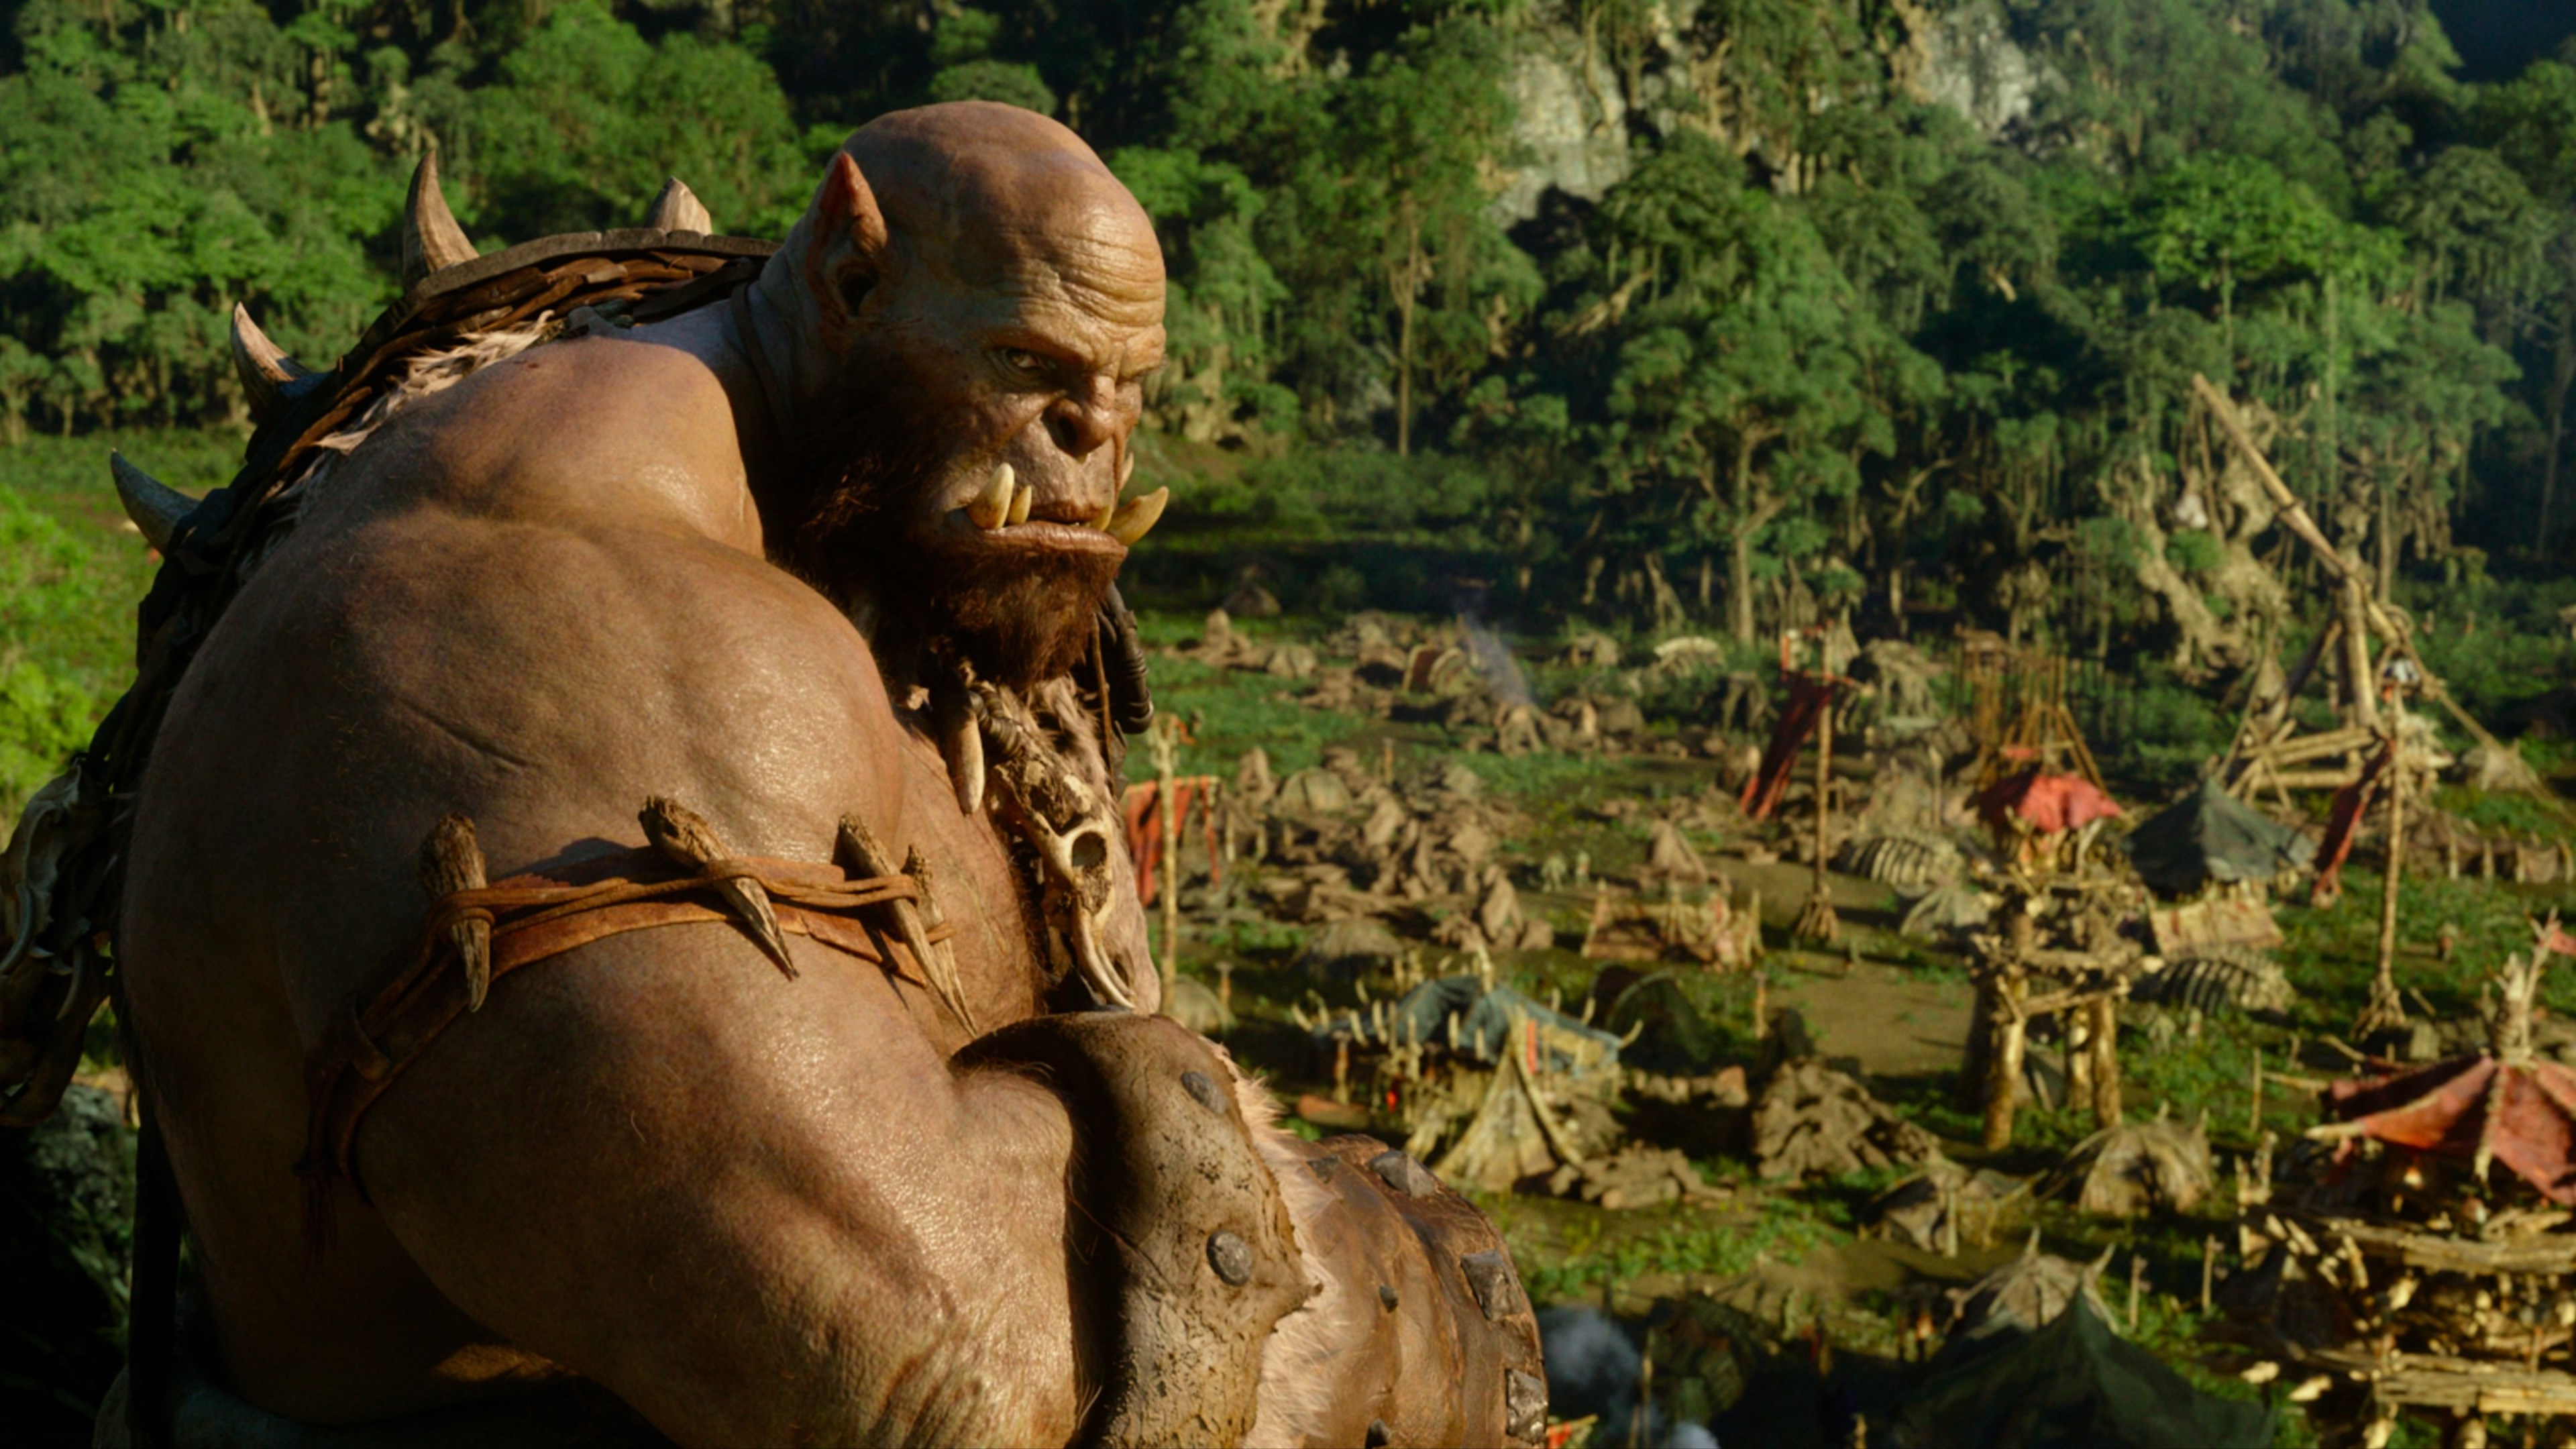 Wallpaper 4k Orgrim Warcraft 2016 2016 Movies Wallpapers Movies